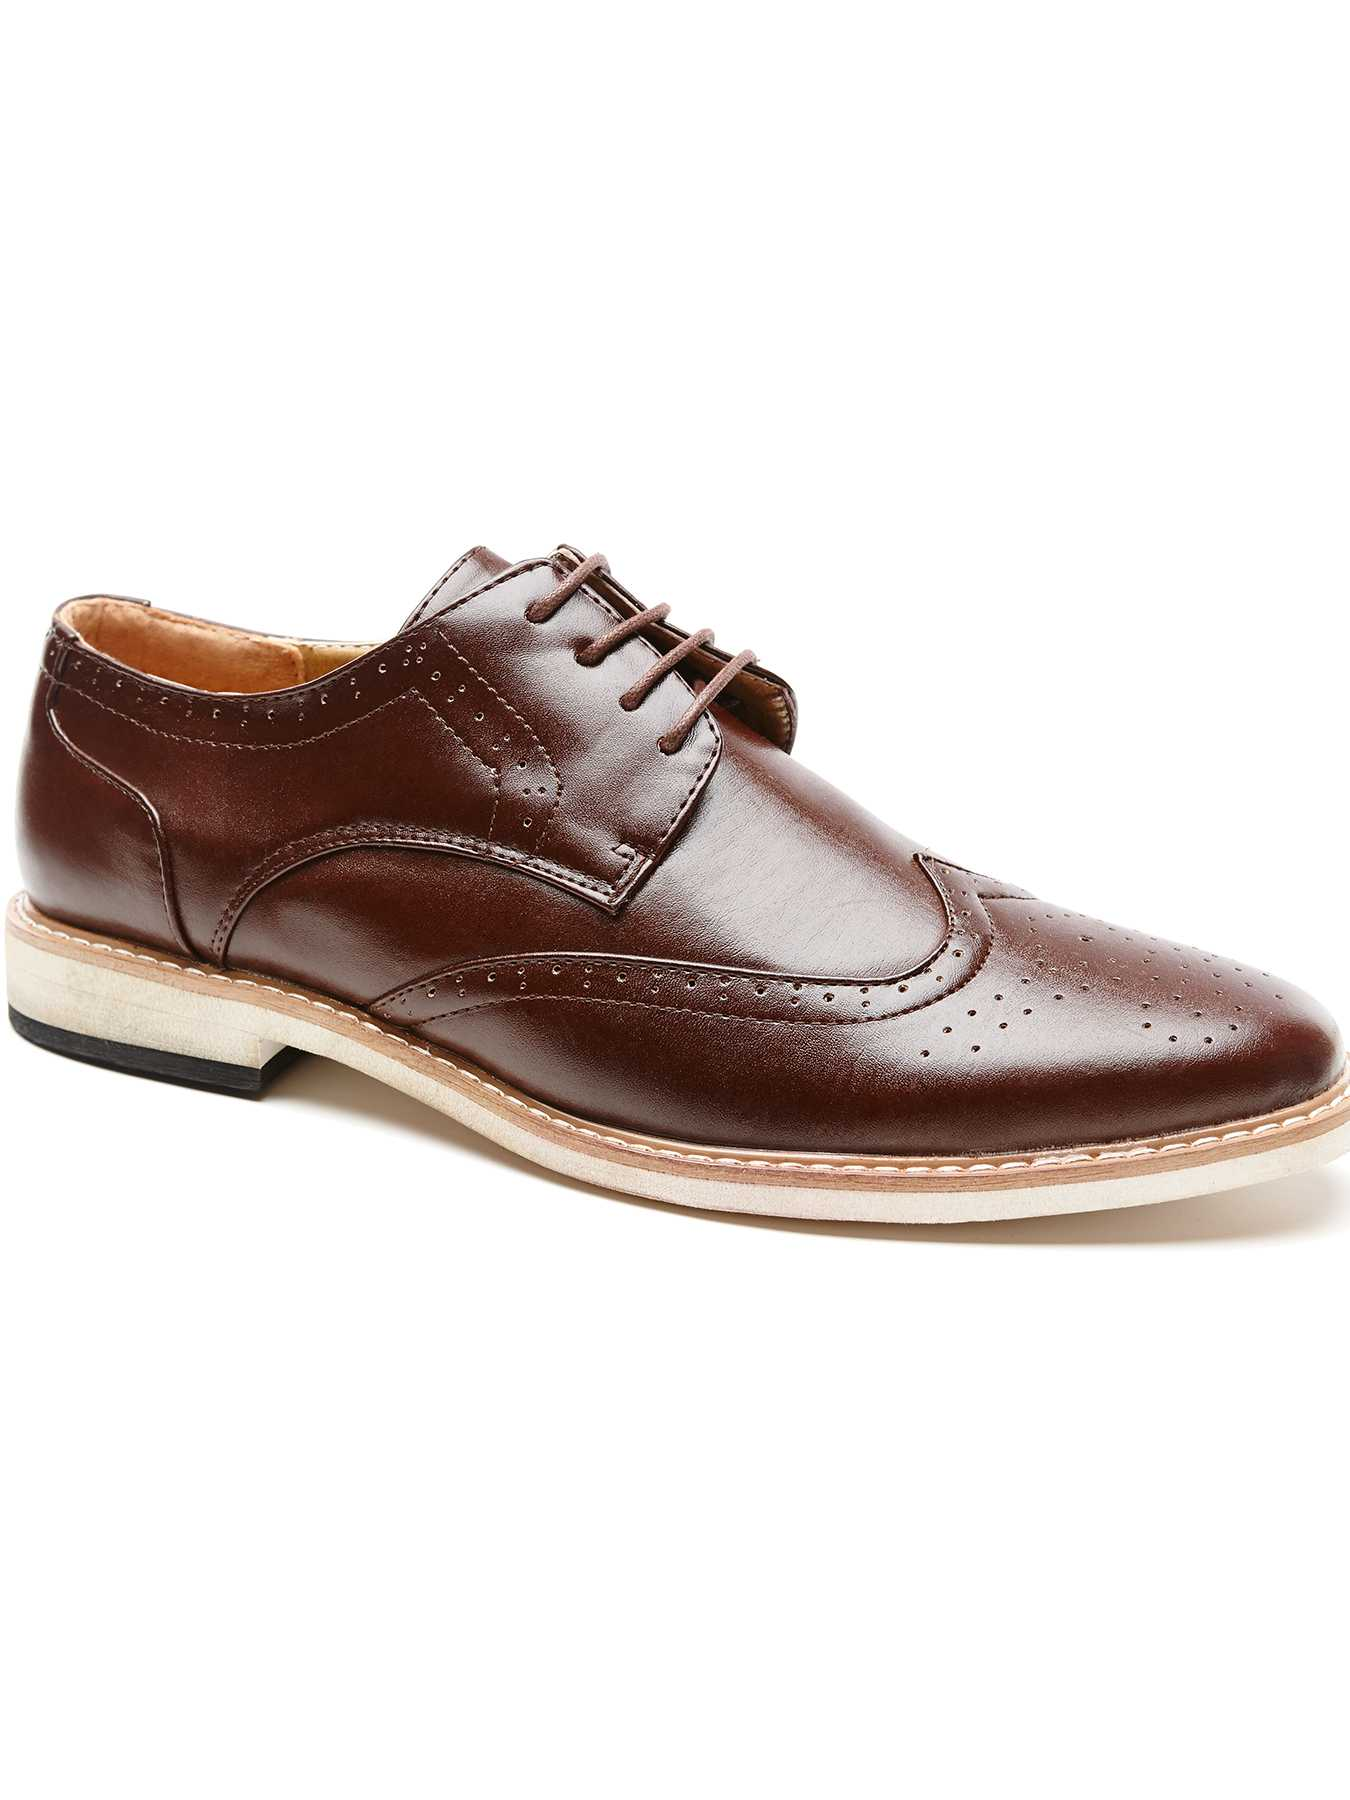 Cubavera Wingtip Dress Shoe